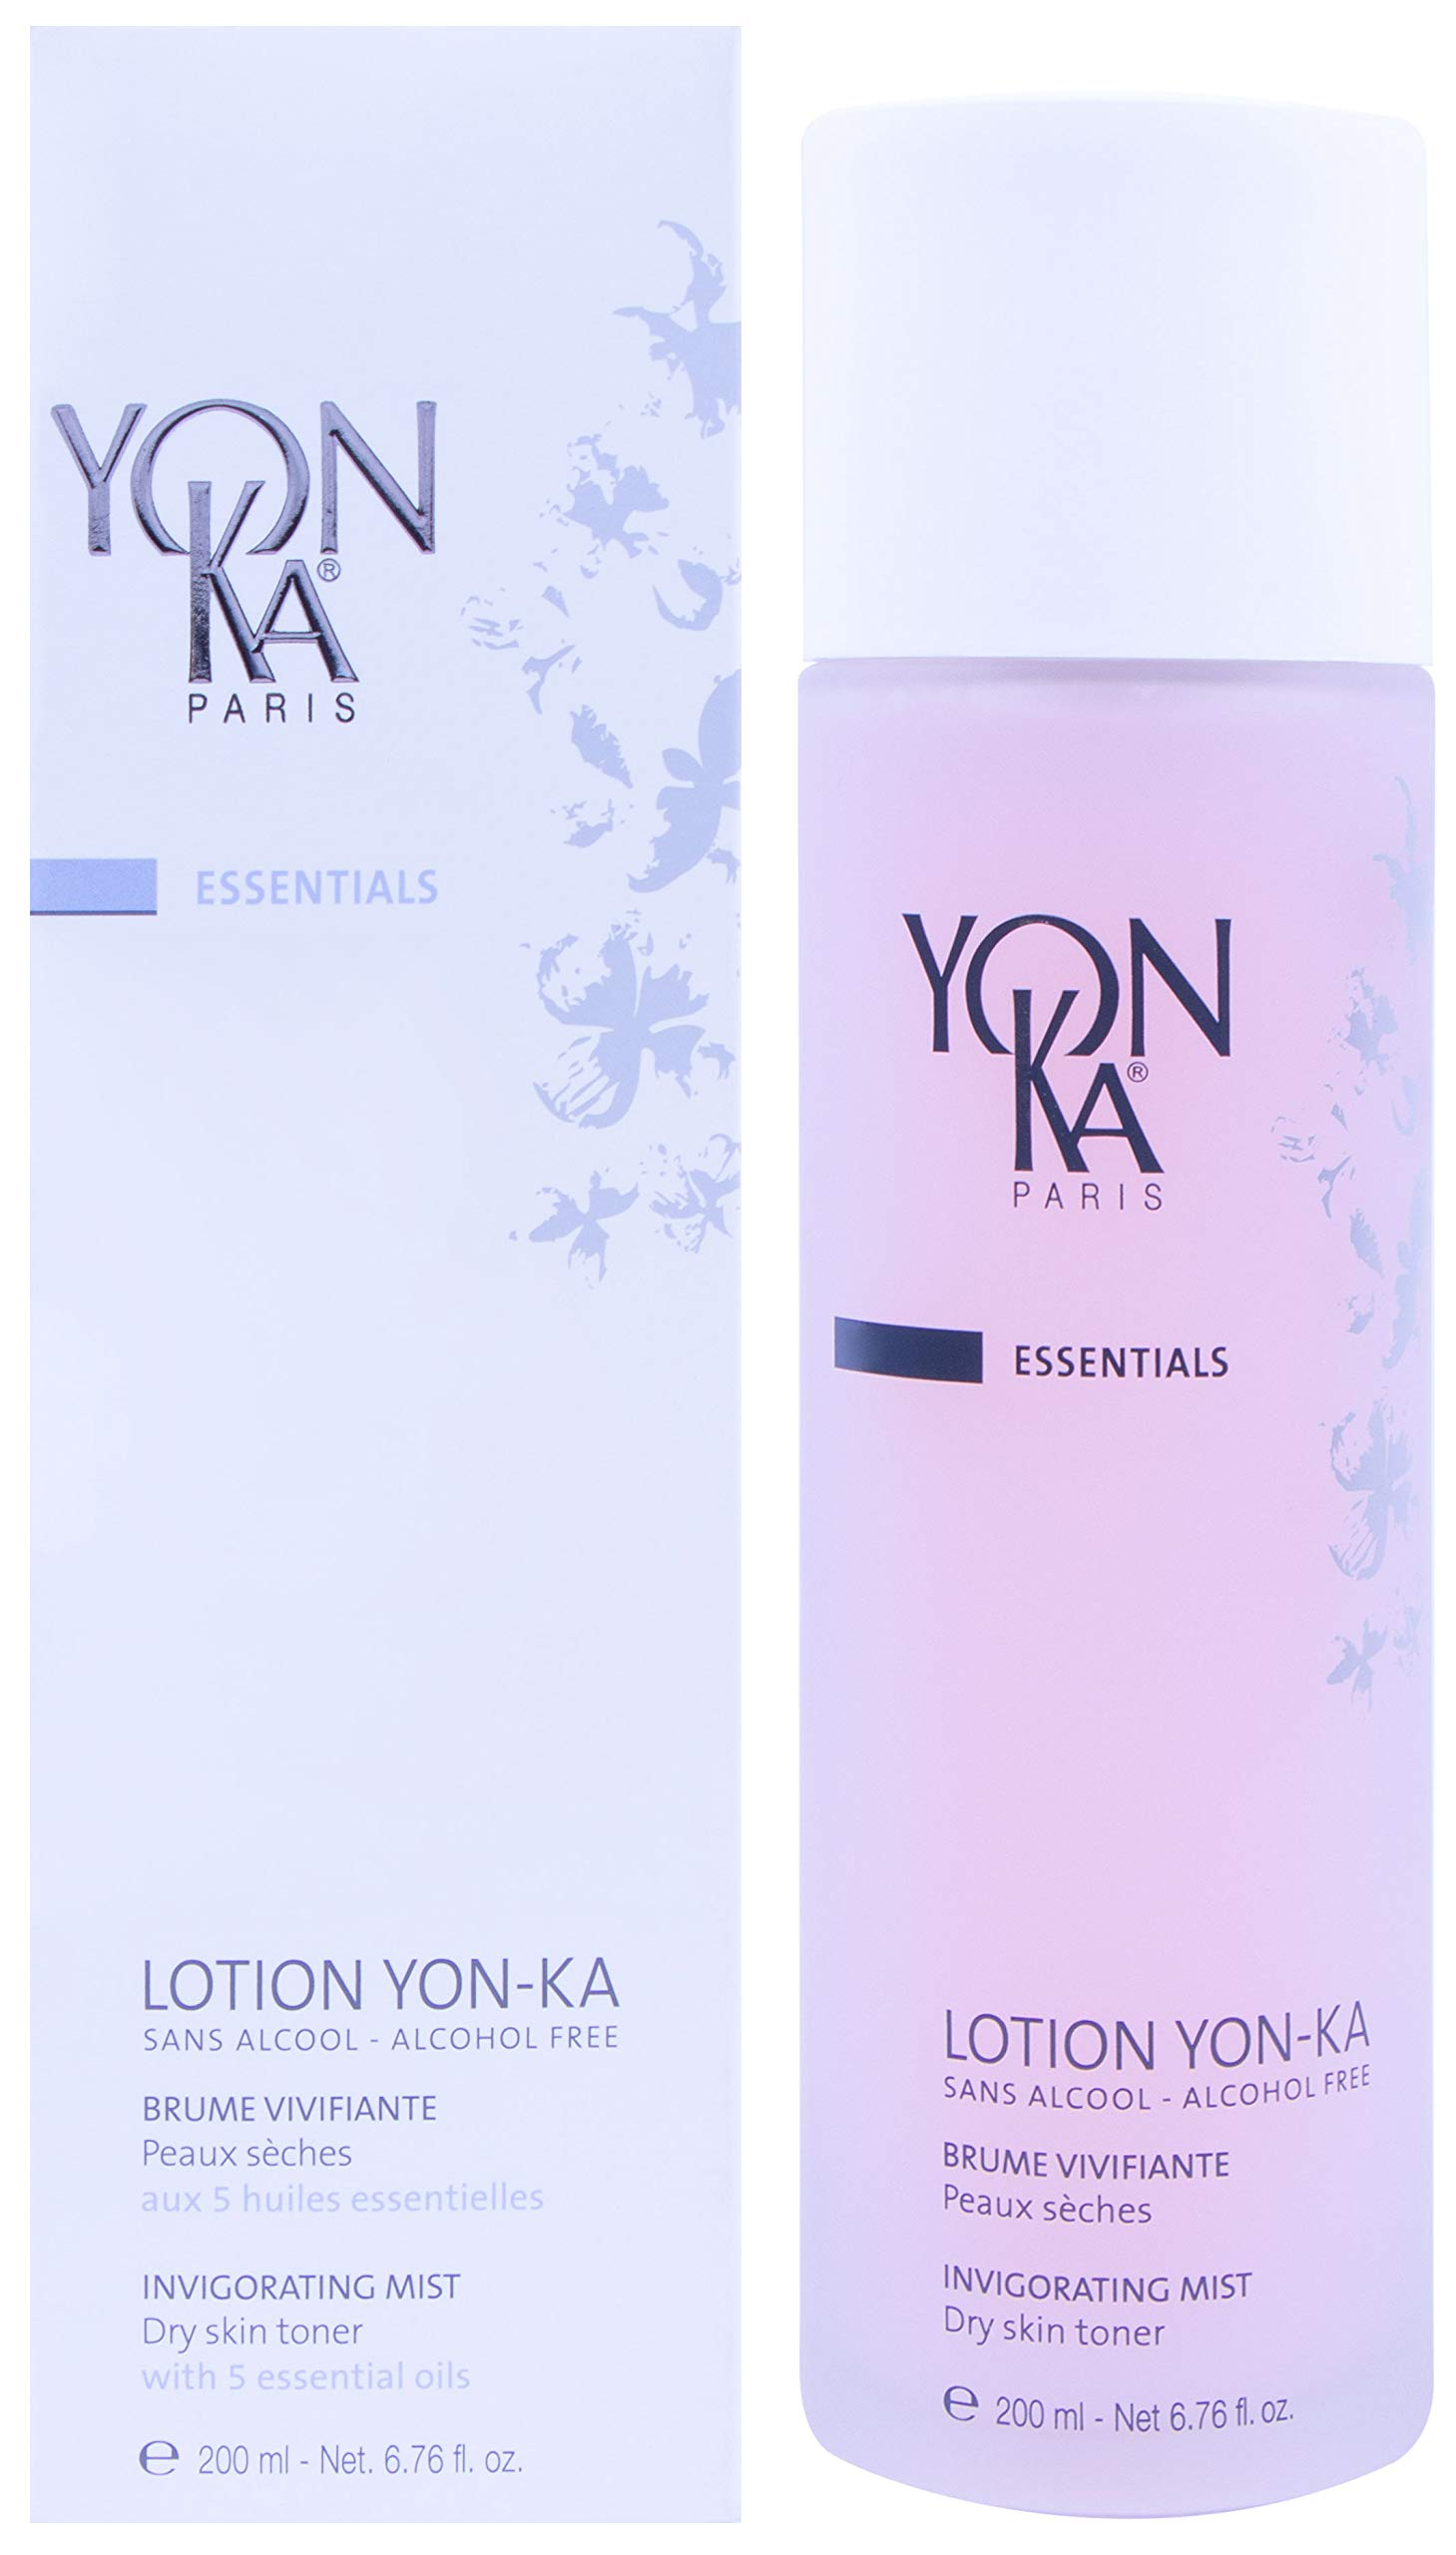 YON-KA ESSENTIALS LOTION PS Invigorating Mist, (6.7 Ounces / 200 Milliliters) - Dry Skin Toner That Soothes, Energizes and Tones Your Complexion by Yonka